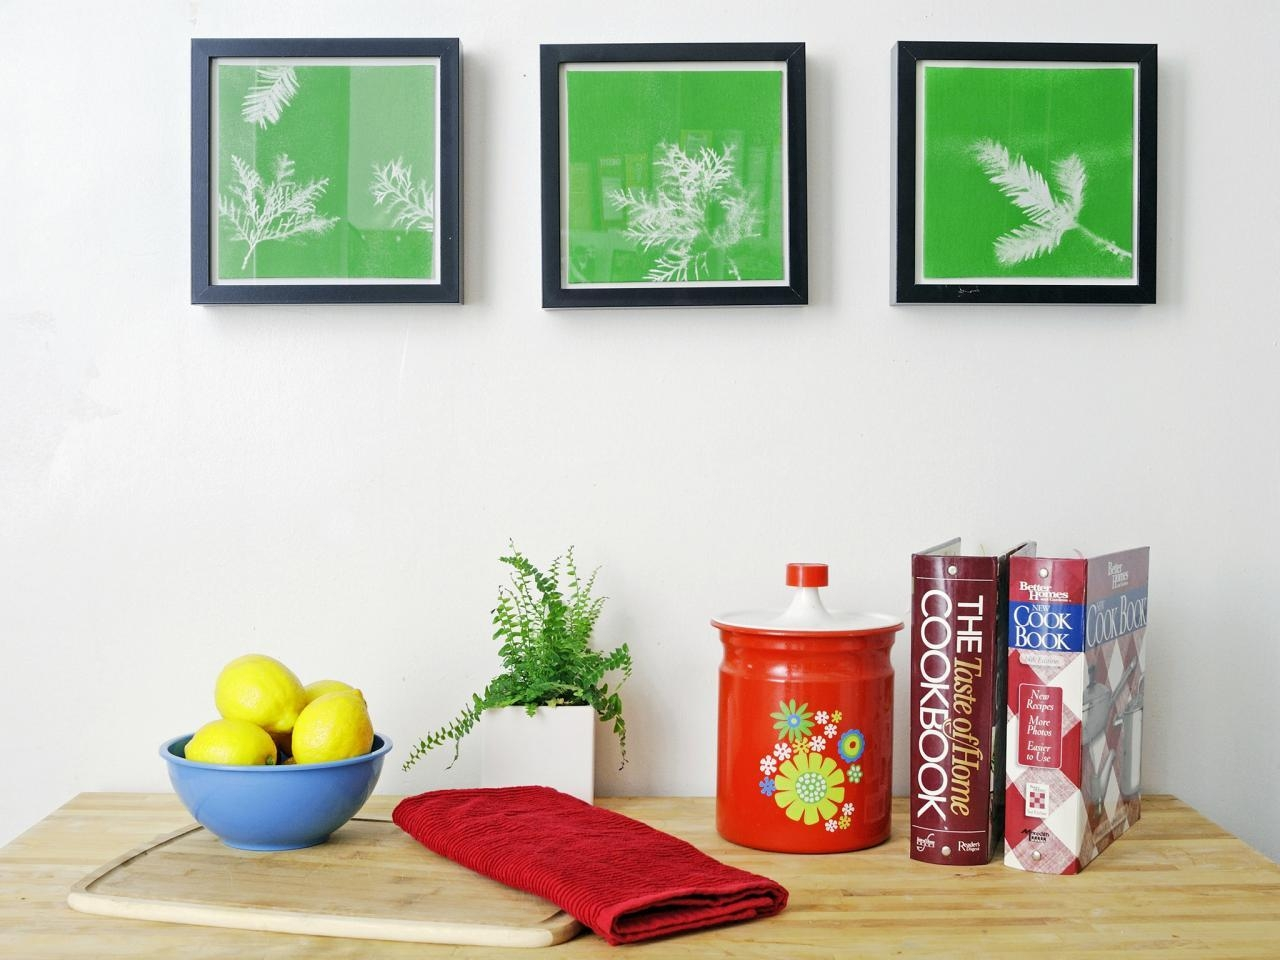 Turn Leaves And Foliage Into Diy Canvas Wall Art | Hgtv Intended For Turn Pictures Into Wall Art (View 8 of 20)